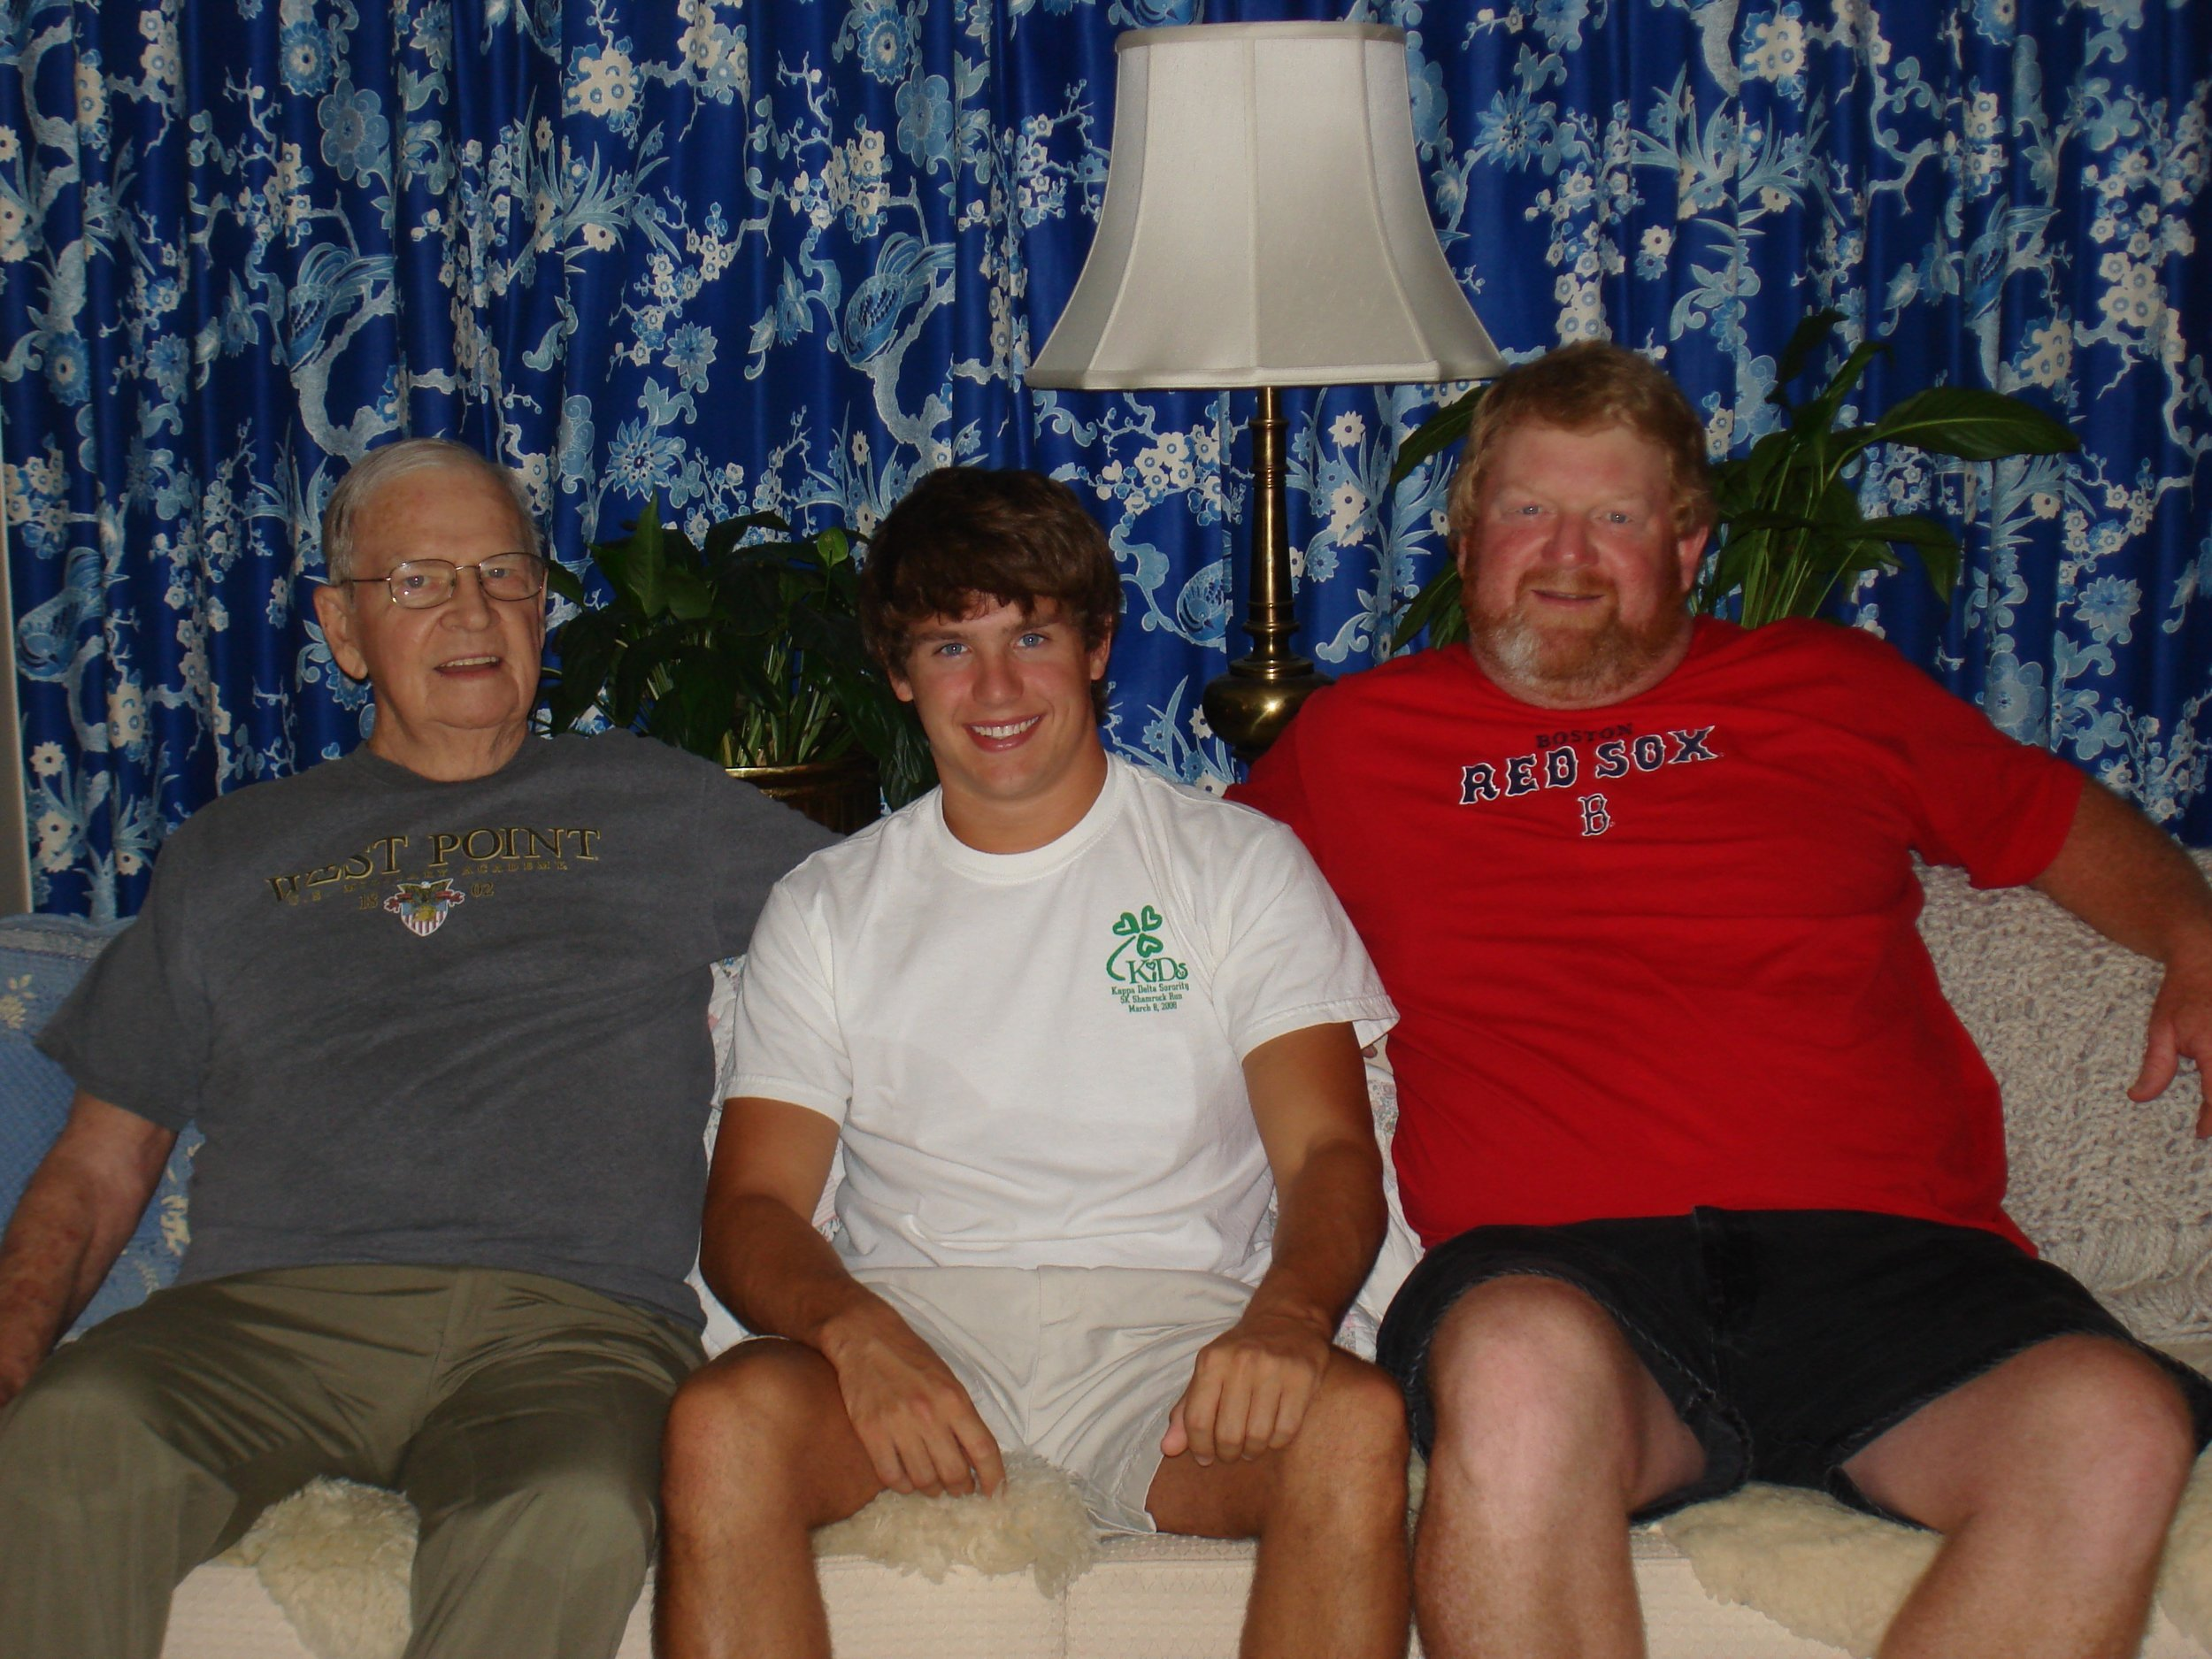 Sitting at home, proudly wearing his West Point t-shirt. Left to right: Tad's Dad, Colonel Tyler, grandson Tyler and nephew Tyler.